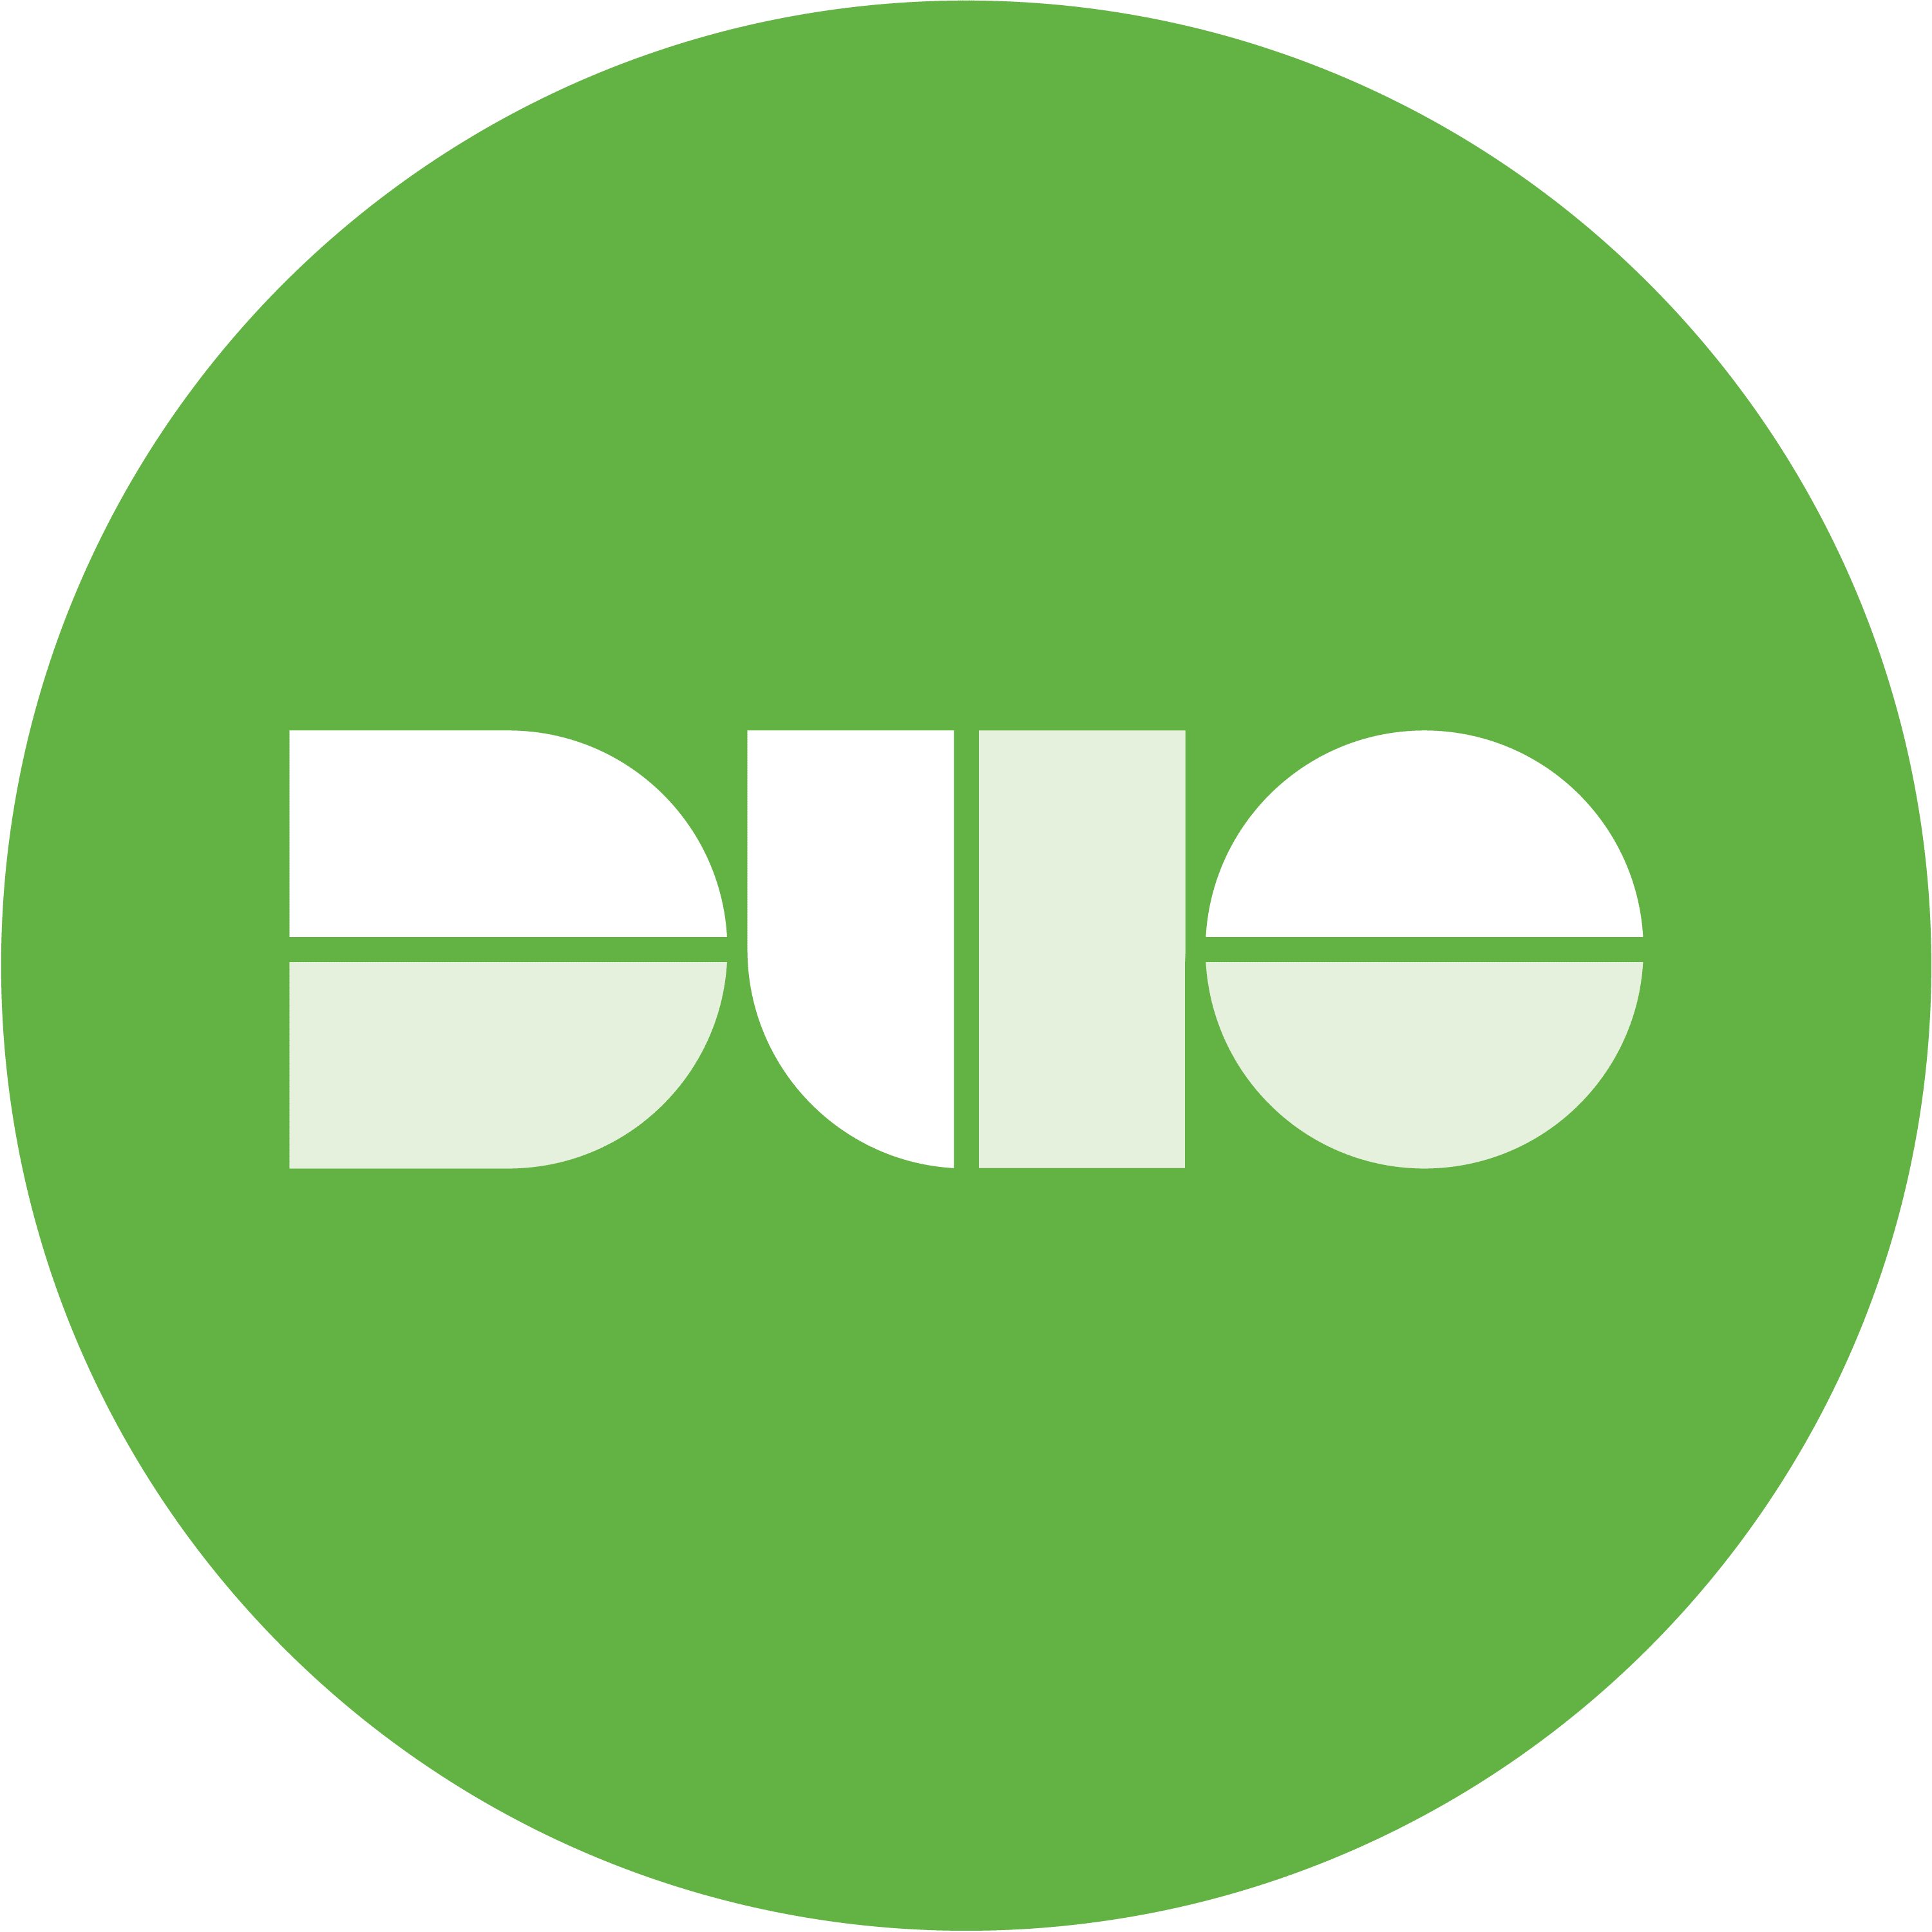 Welcoming A New Sponsor: Duo Security.